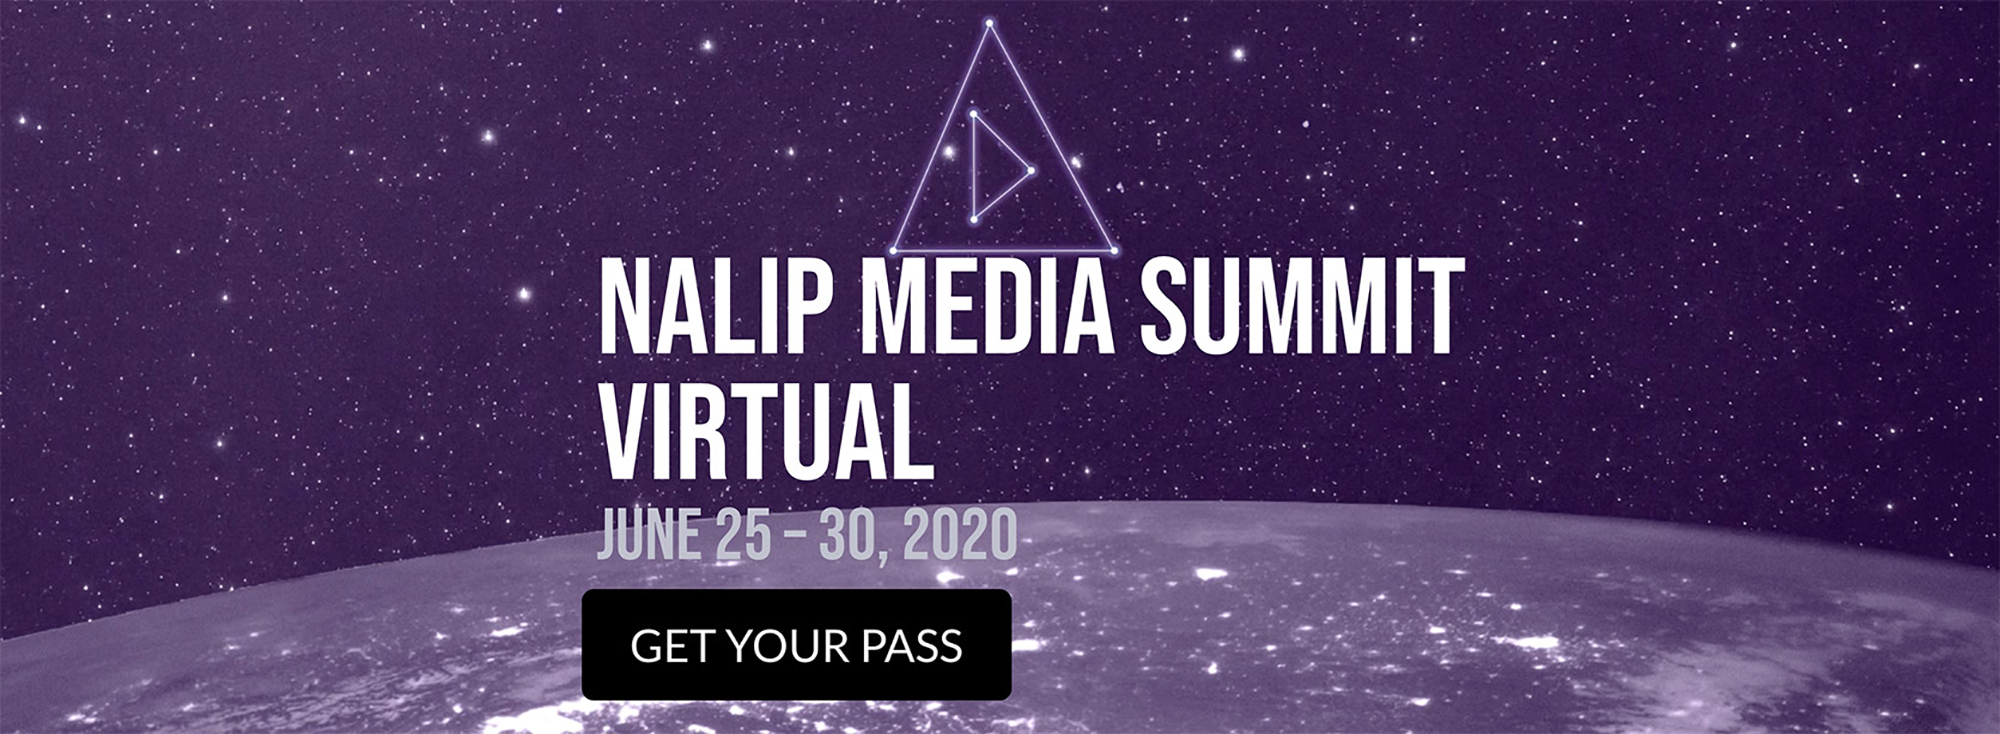 2020 NALIP Media Summit